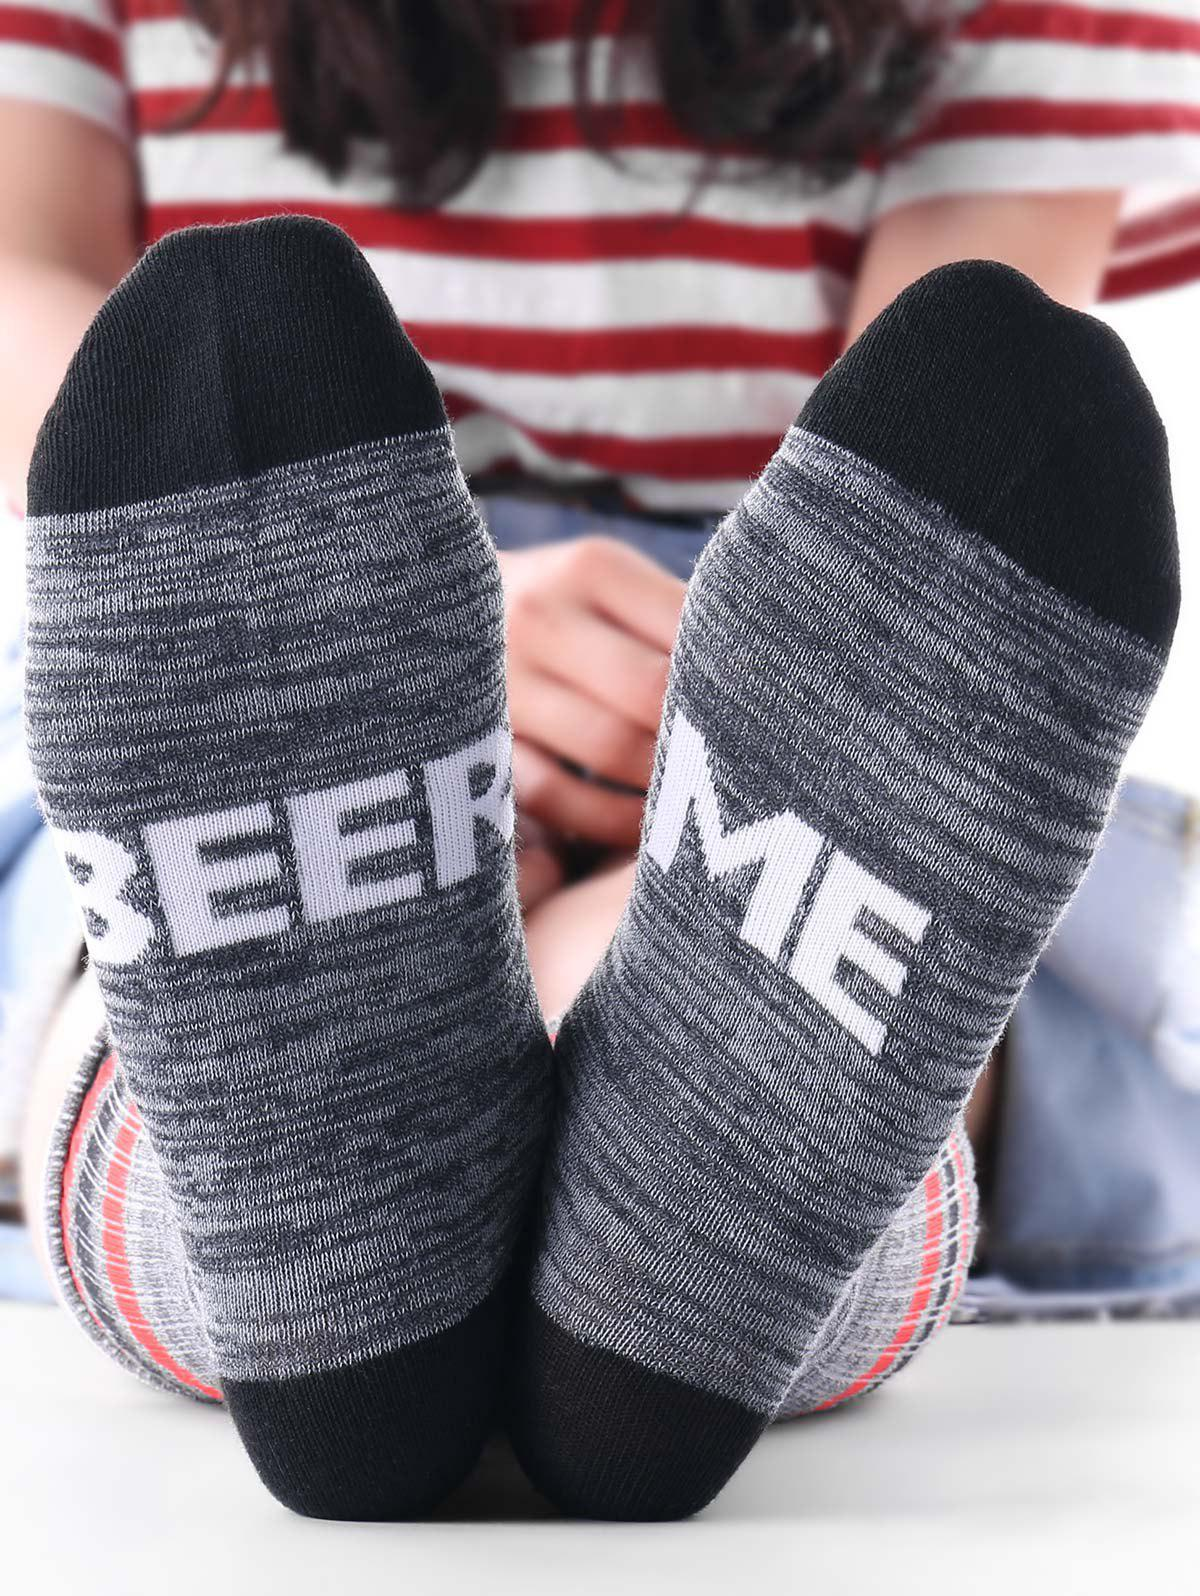 Beer Me Print Ankle SocksACCESSORIES<br><br>Color: GRAY; Type: Socks; Group: Adult; Gender: For Women; Style: Fashion; Pattern Type: Letter; Material: Polyester; Weight: 0.1000kg; Package Contents: 1 x Socks (Pair);